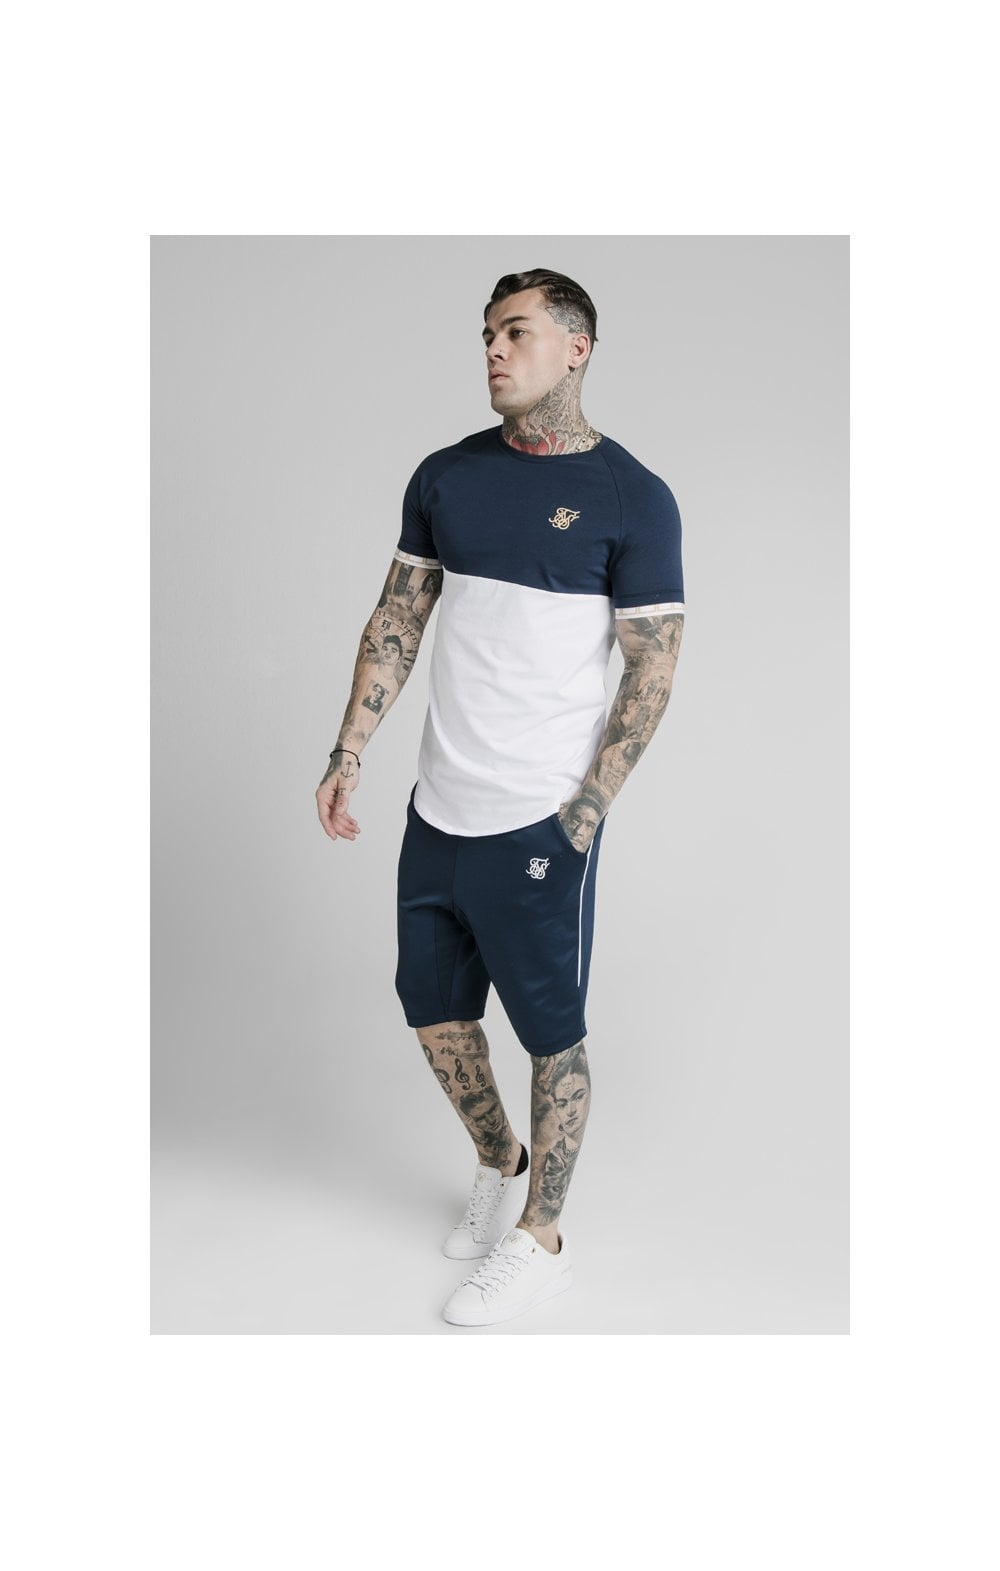 SikSilk S/S Cut & Sew Tech Tee - Navy & White (3)